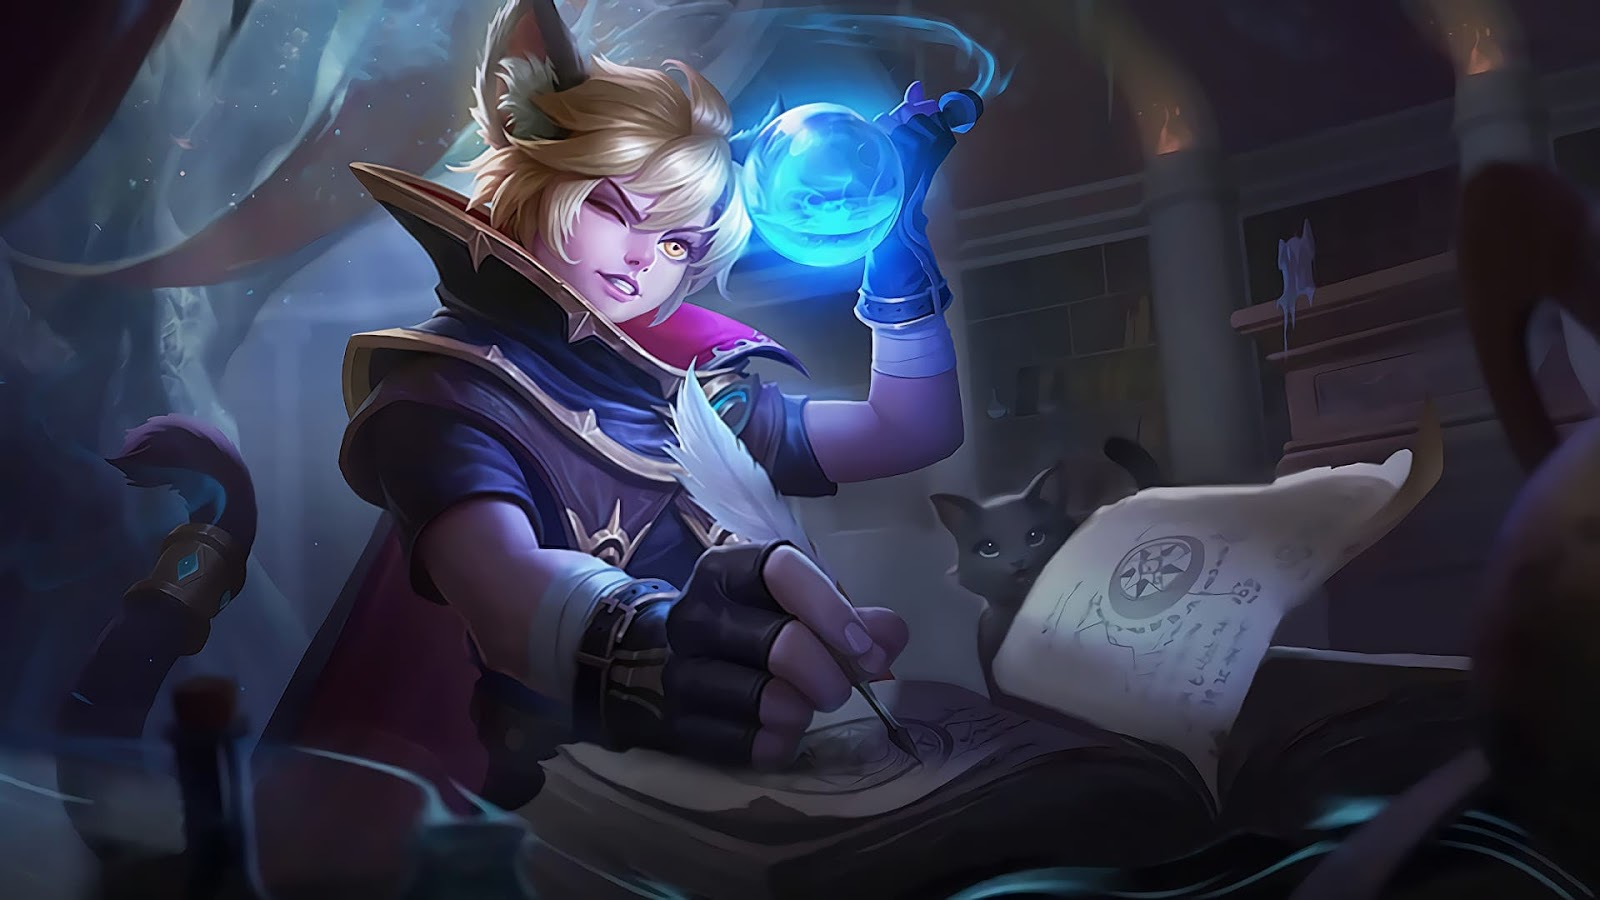 Wallpaper Harith Stardust Skin Mobile Legends HD for PC